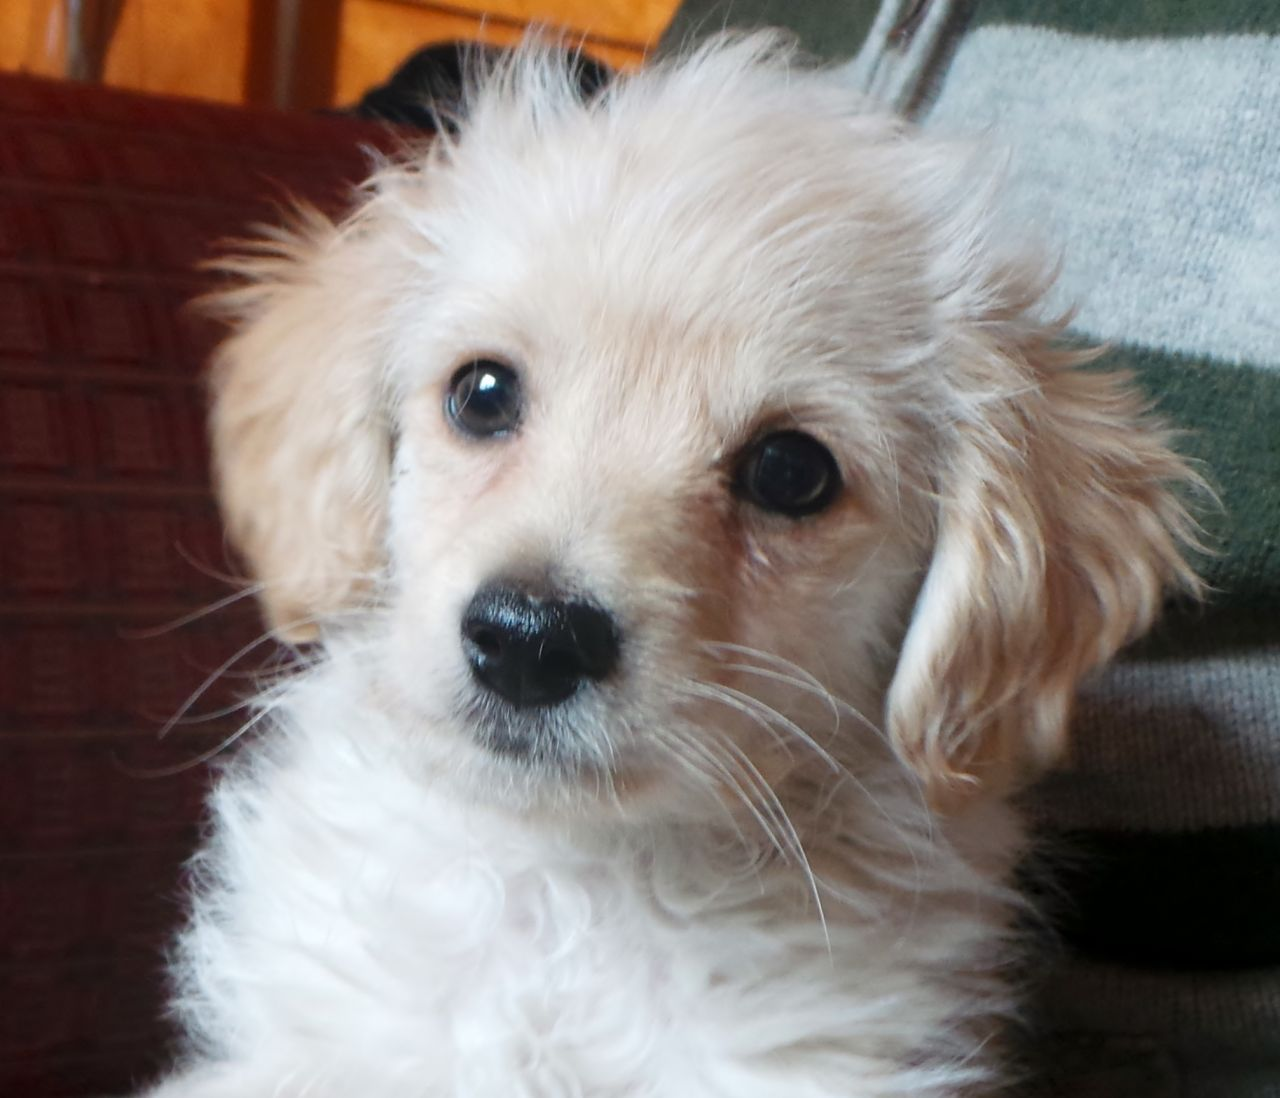 White Toy Poodles Full Grown Sweet chihuahua x toy poodle